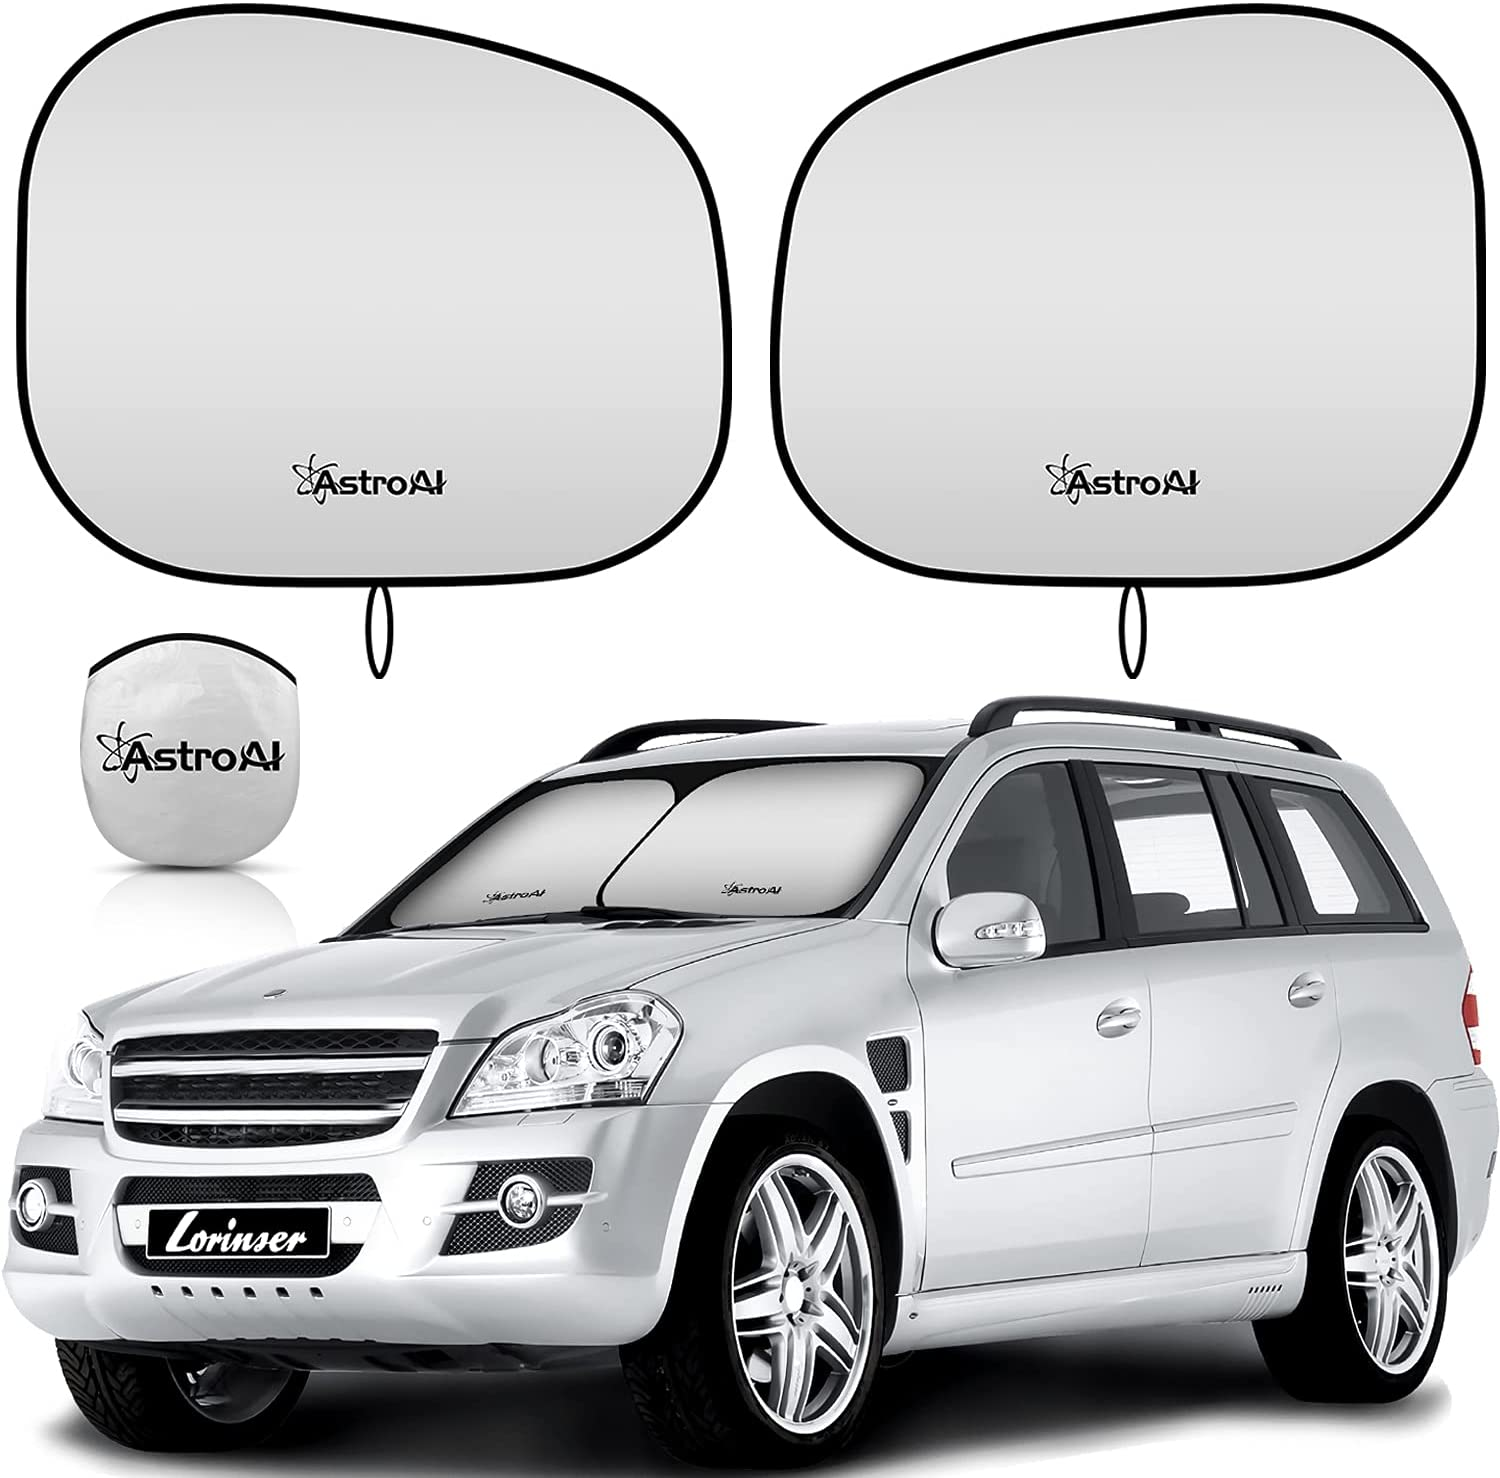 AstroAI Car Sun Shade for Max 70% OFF 1 year warranty Foldable Windshield Front Piece -2